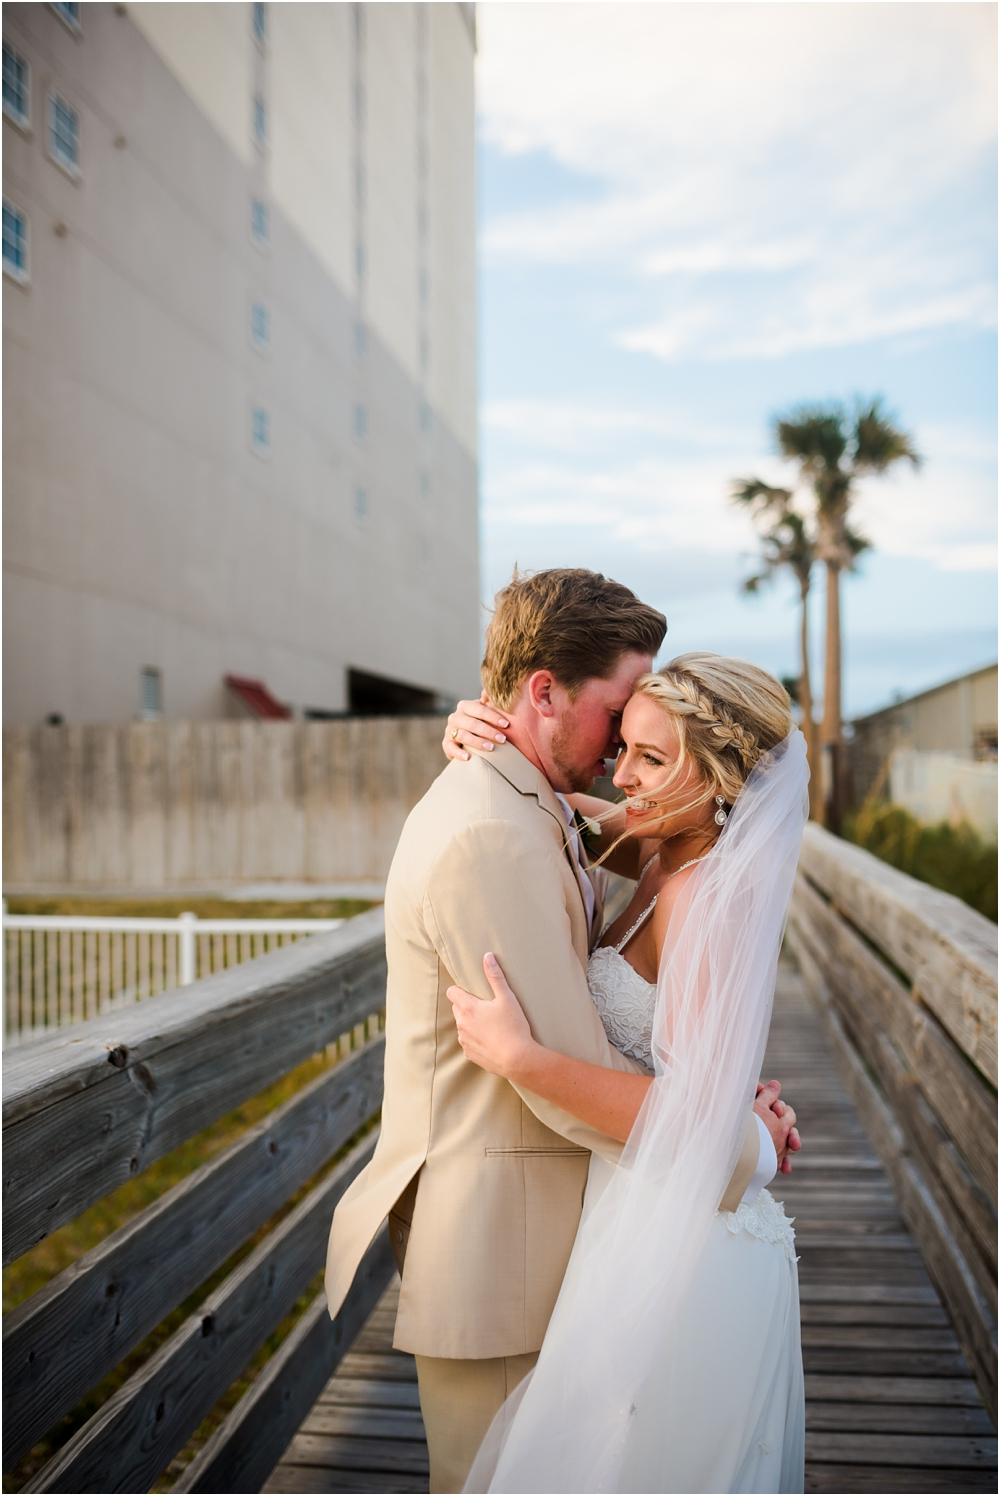 dillard-florida-wedding-photographer-panama-city-beach-dothan-tallahassee-kiersten-grant-photography-164.jpg